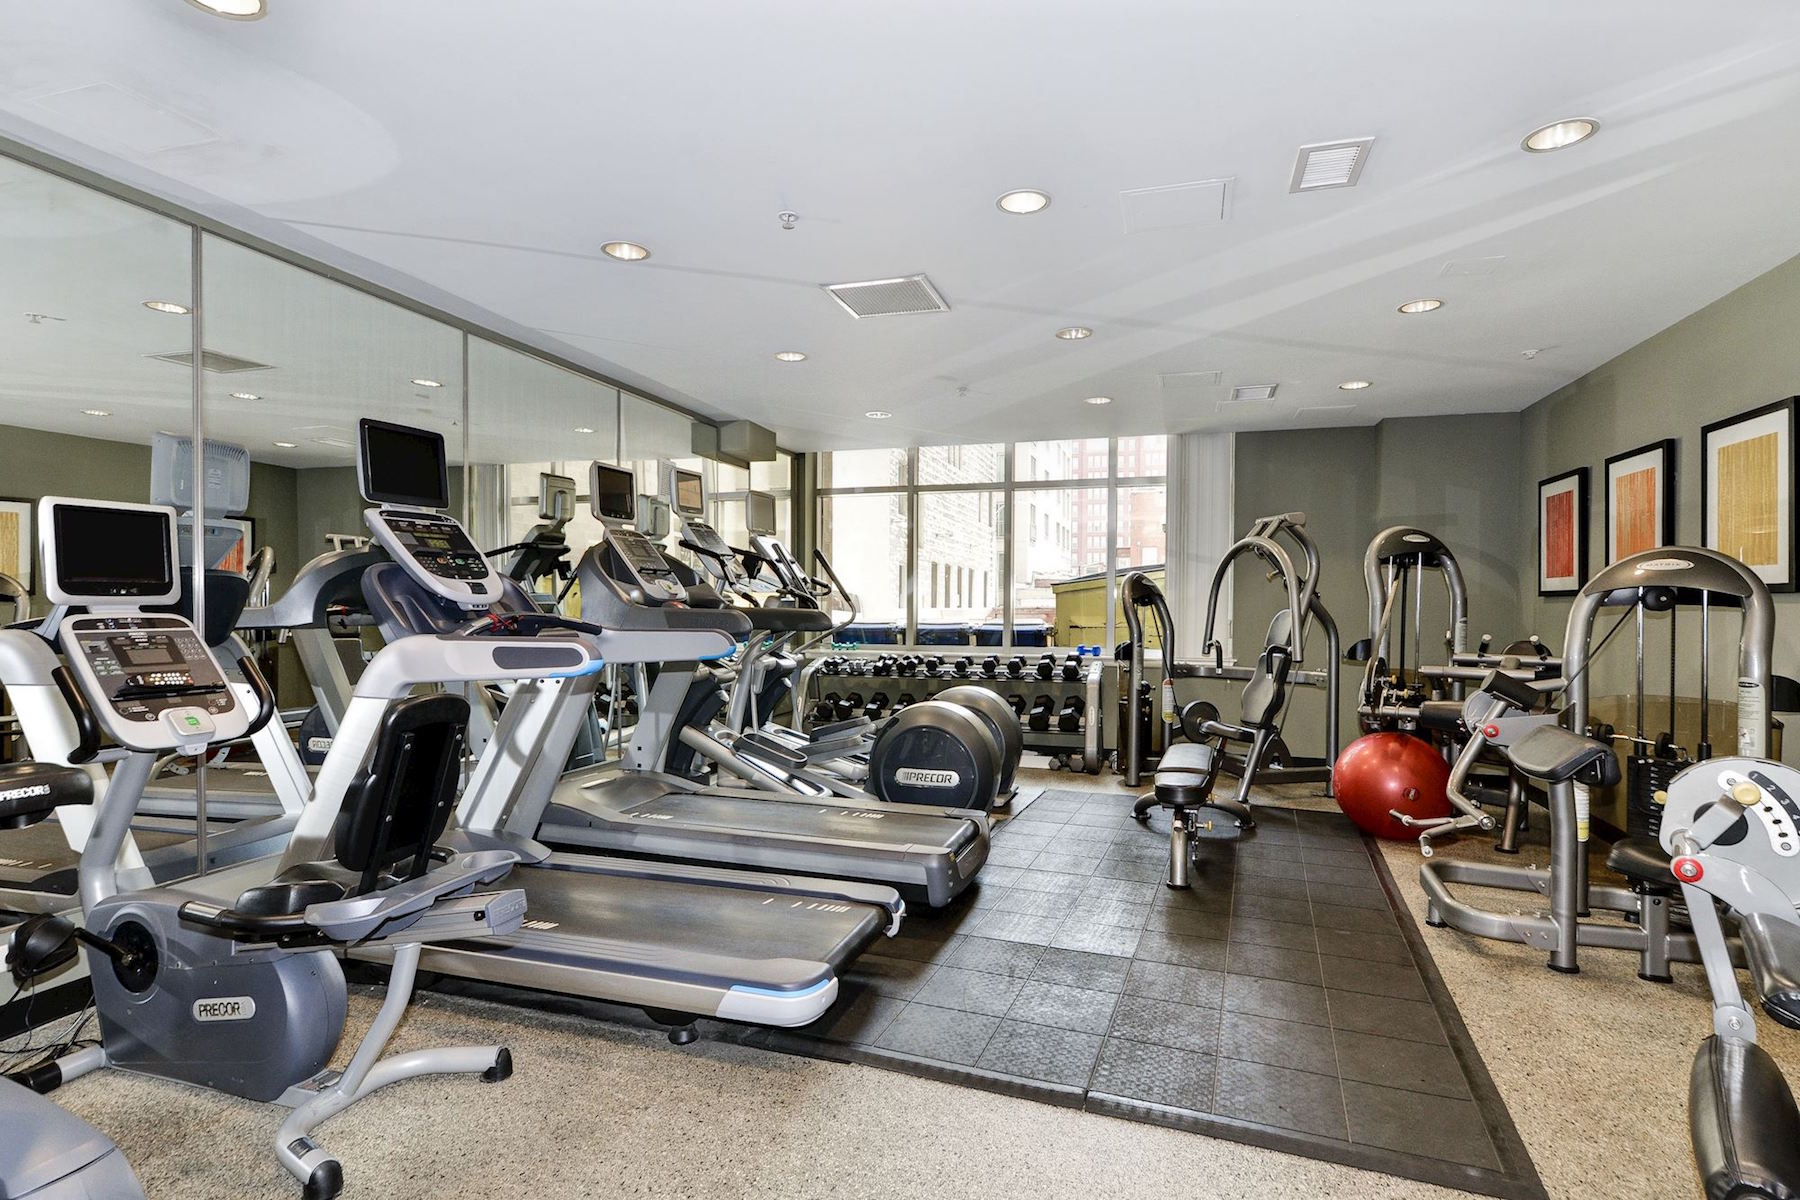 Additional photo for property listing at Madrigal Lofts 811 4th Street Nw 114 Washington, 哥倫比亞特區 20001 美國